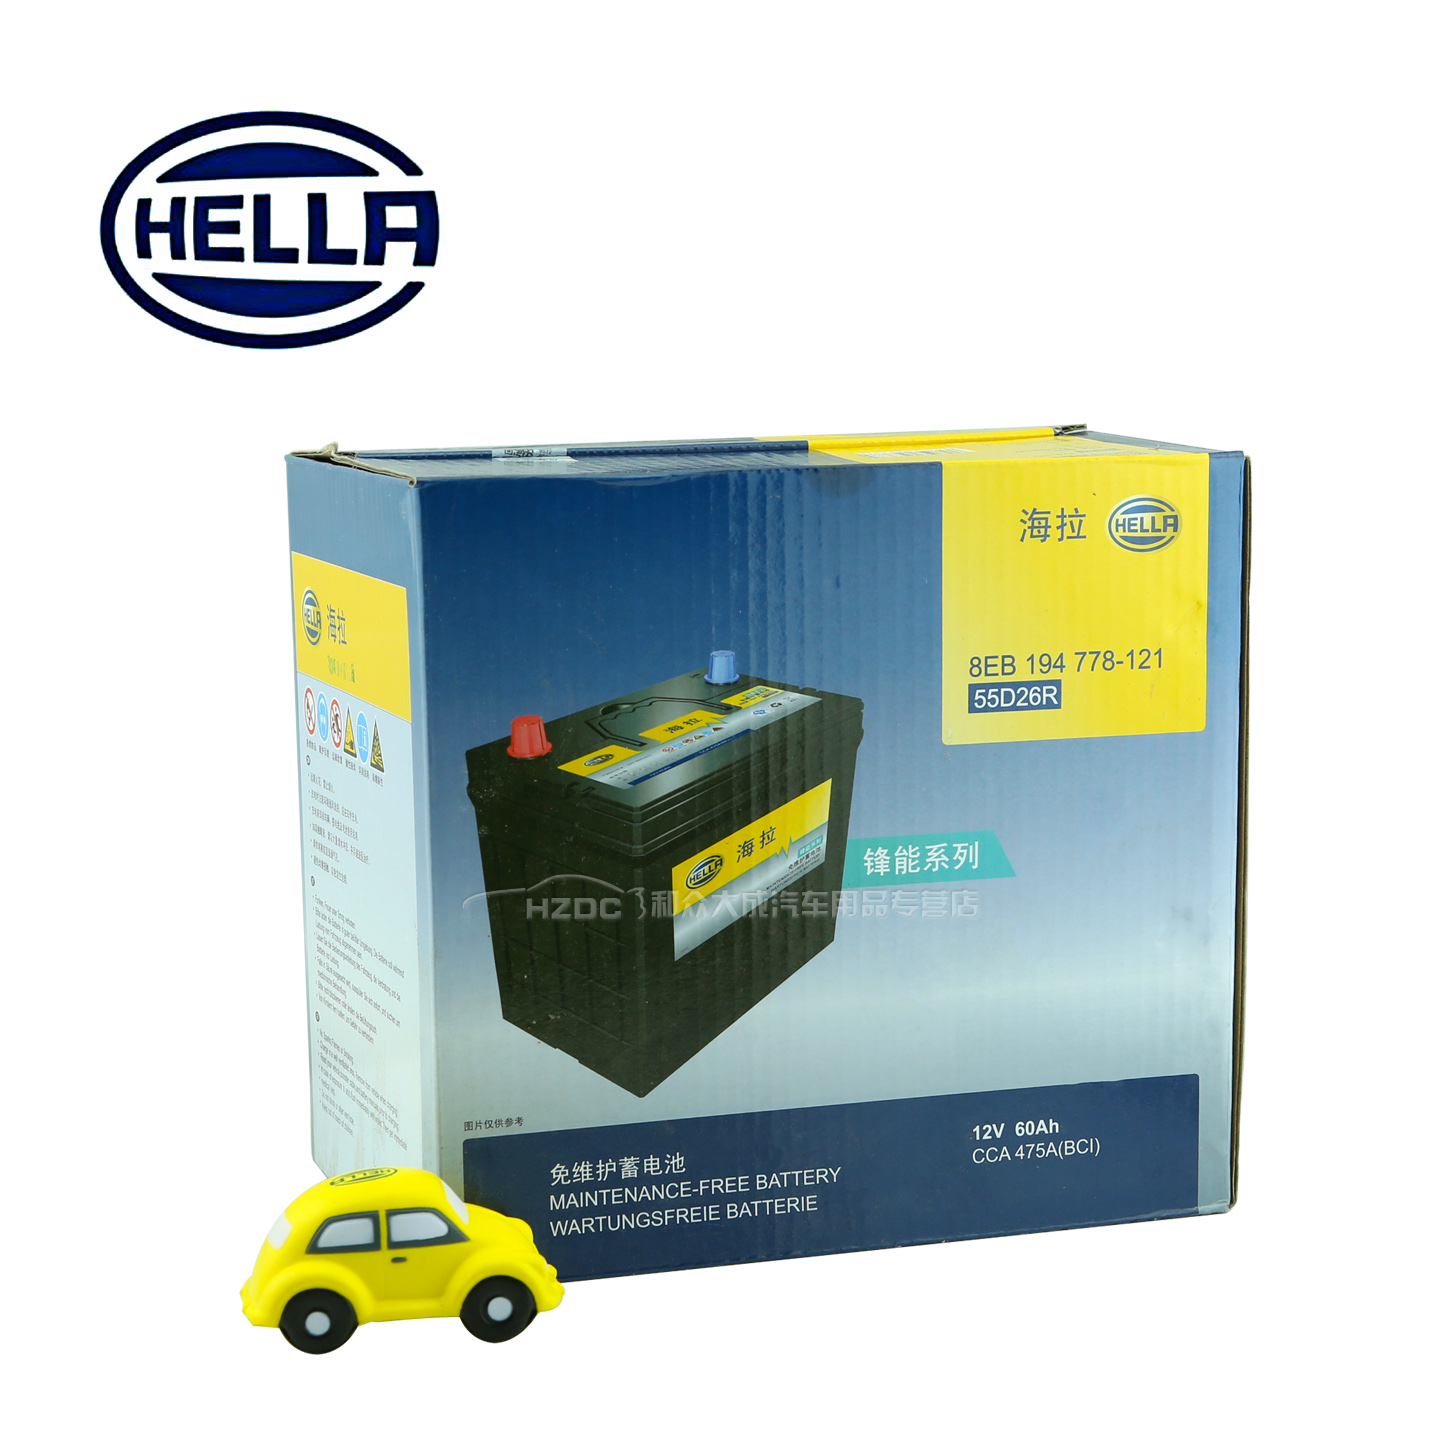 Hella hella front can series maintenance-free battery 55d26r battery 121 wall ha jephthah h3